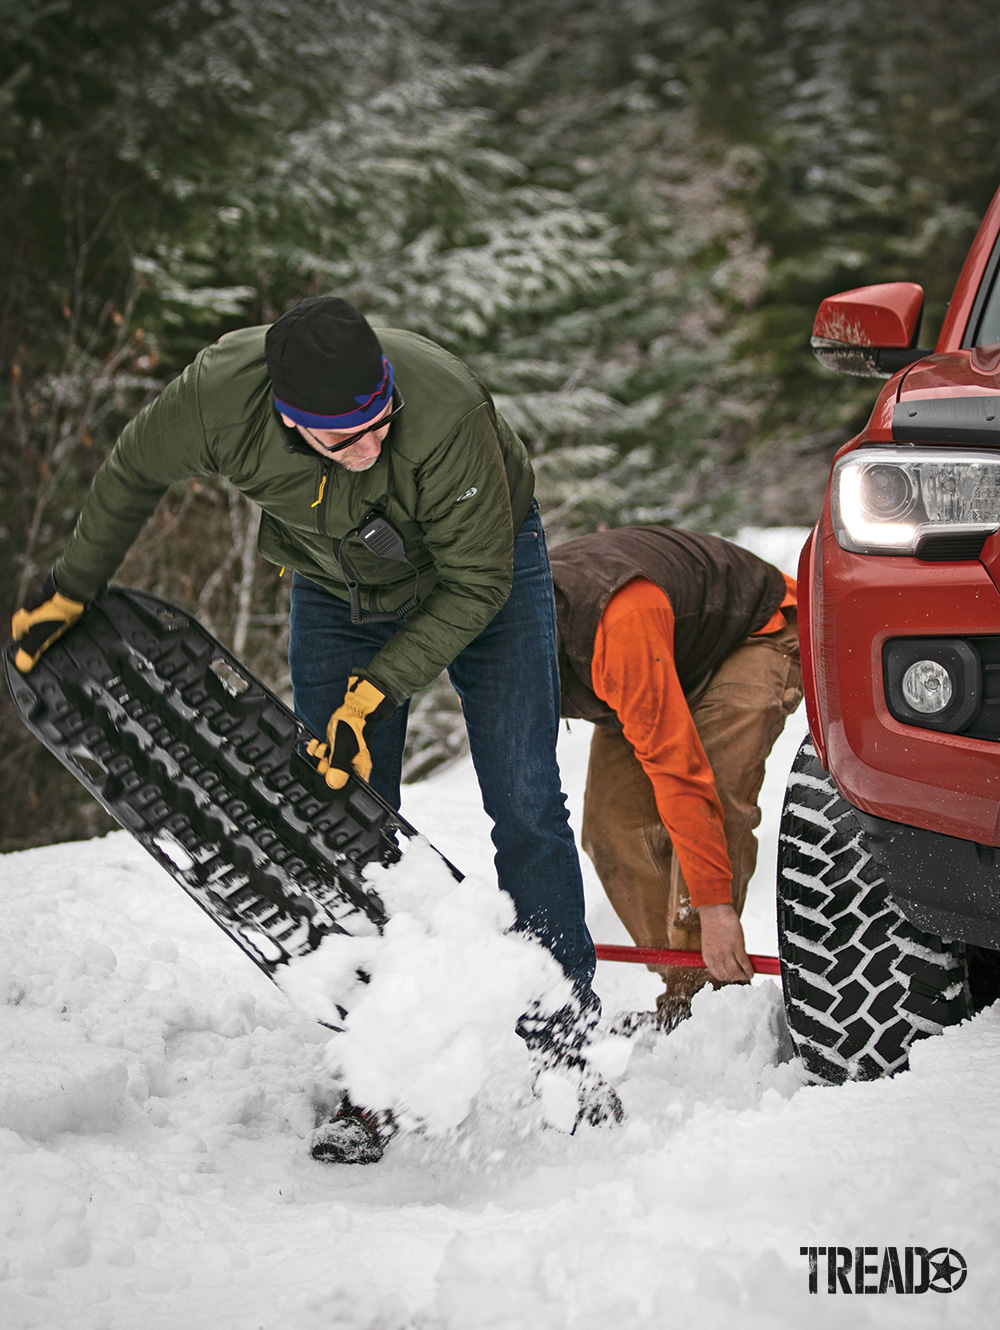 Two men use a black recovery board and red shovel to dig out an orange Toyota truck in deep snow.